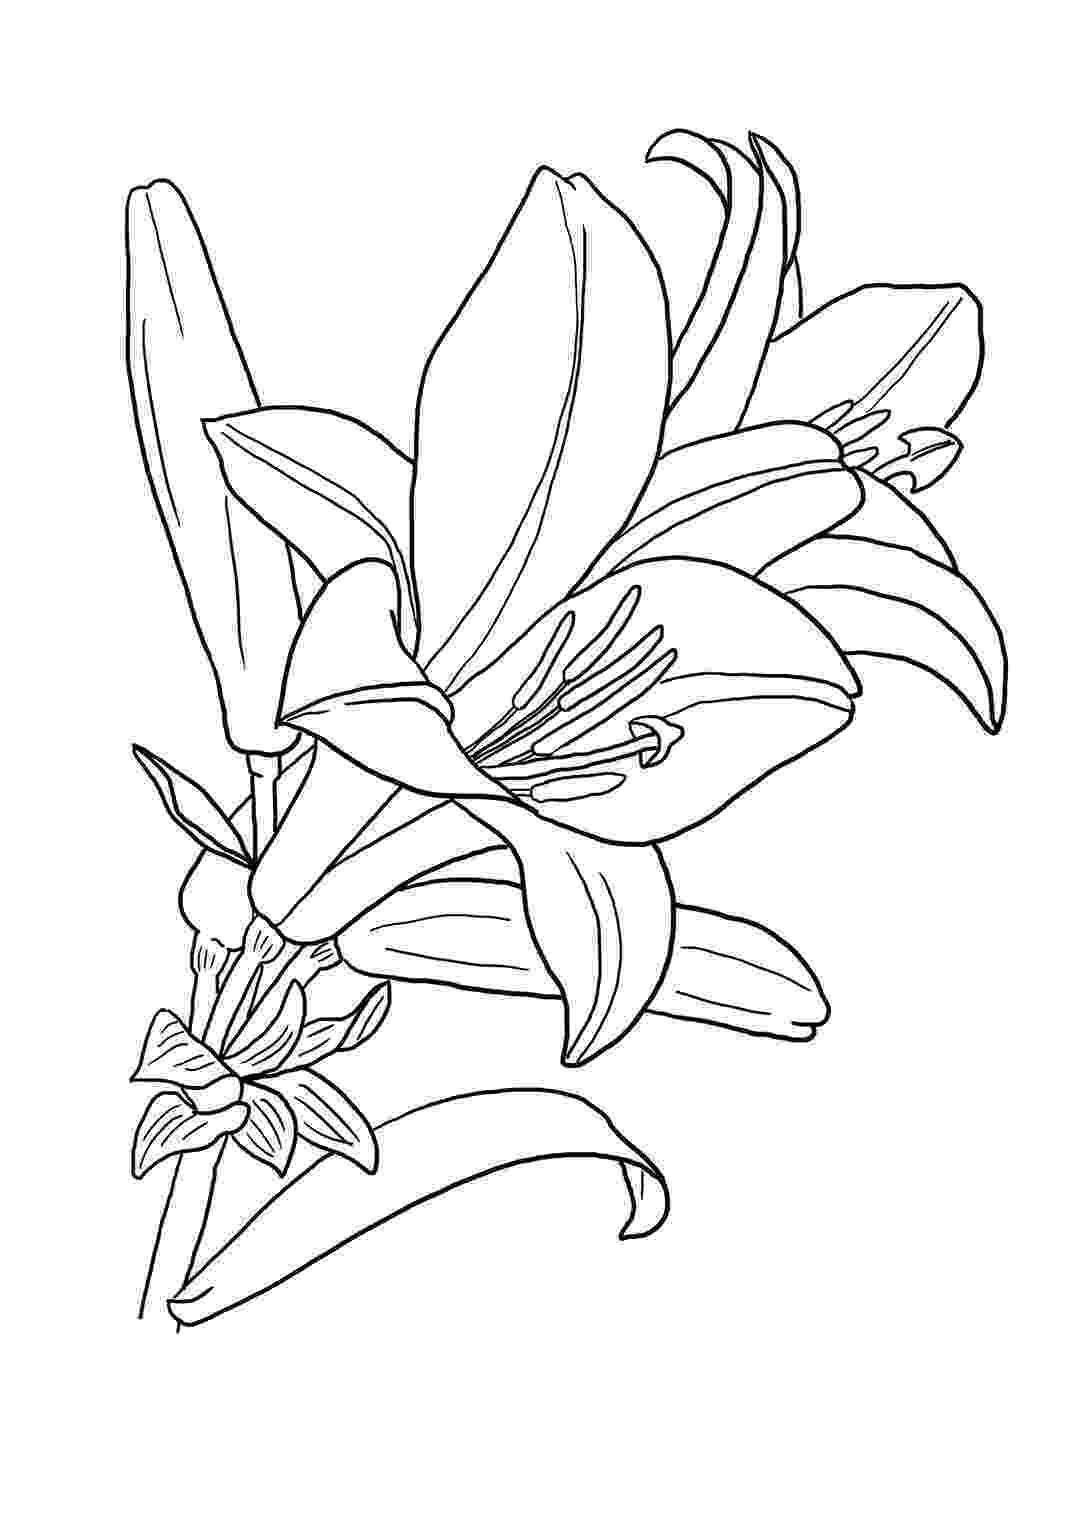 color page flower flower garden coloring pages to download and print for free color page flower